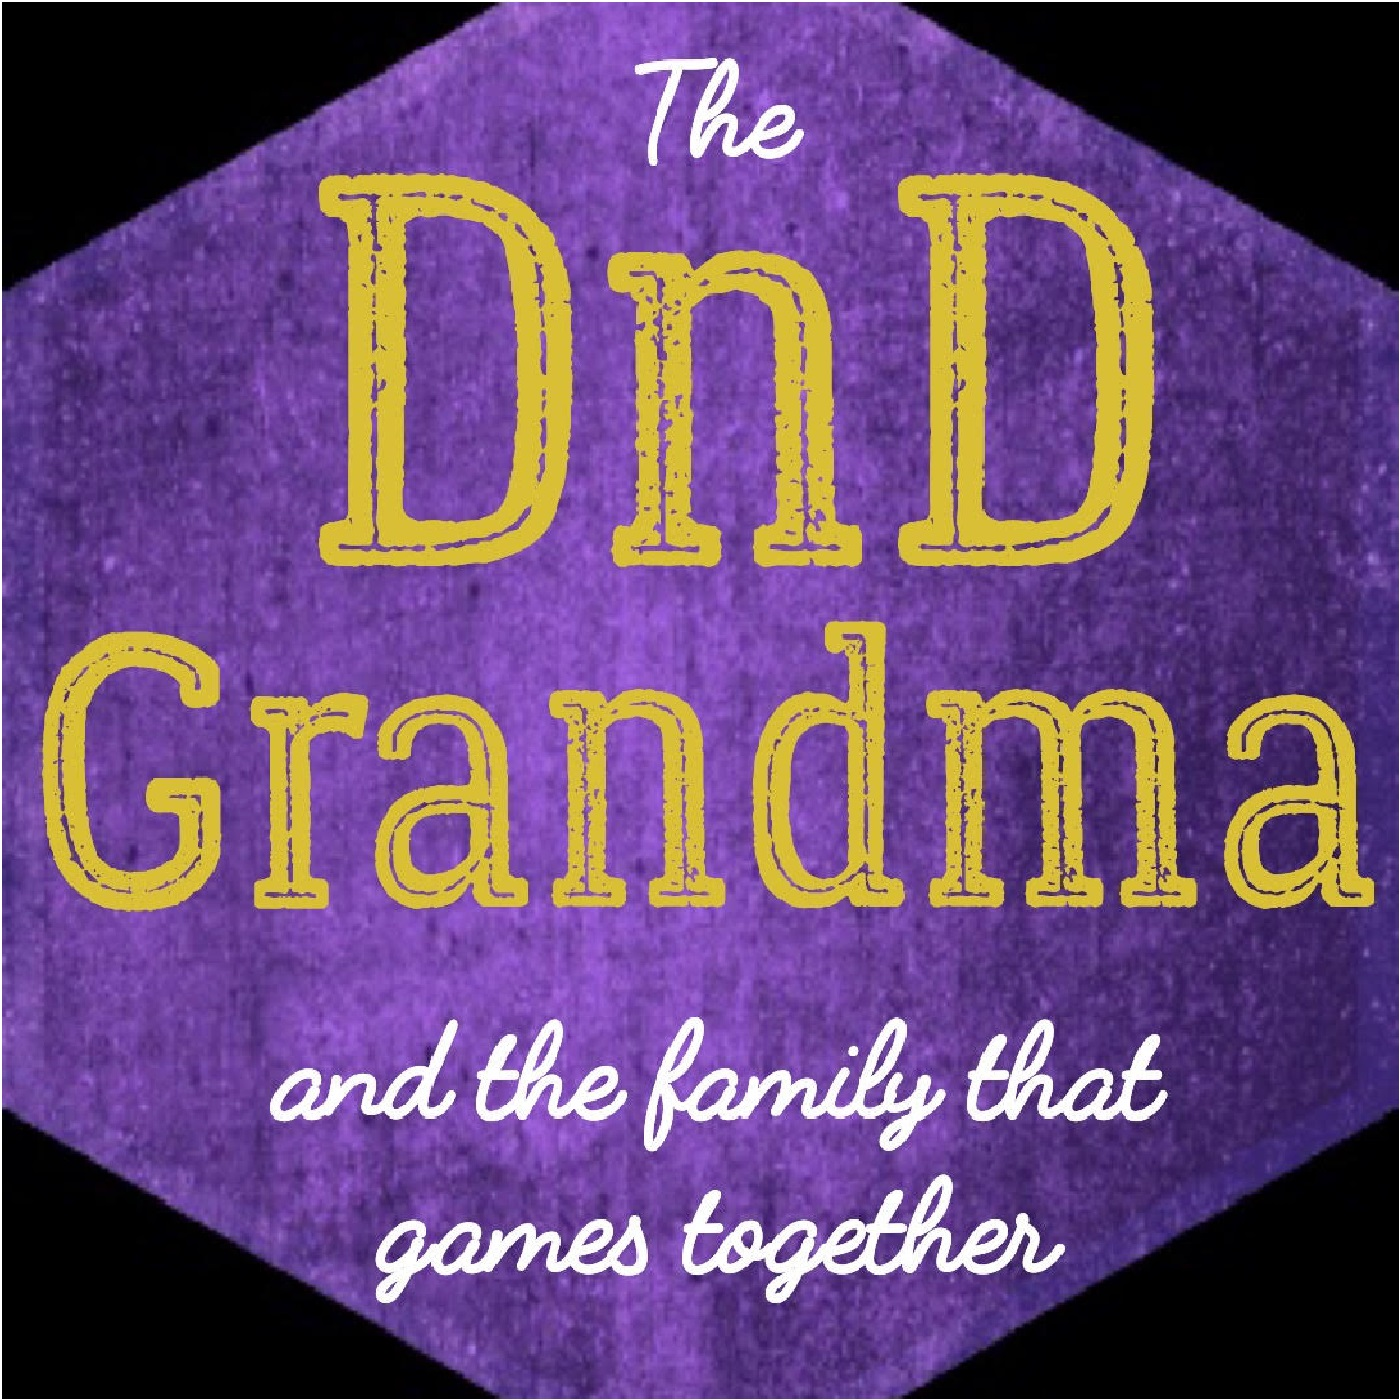 The DnD Grandma and the Family that Games Together